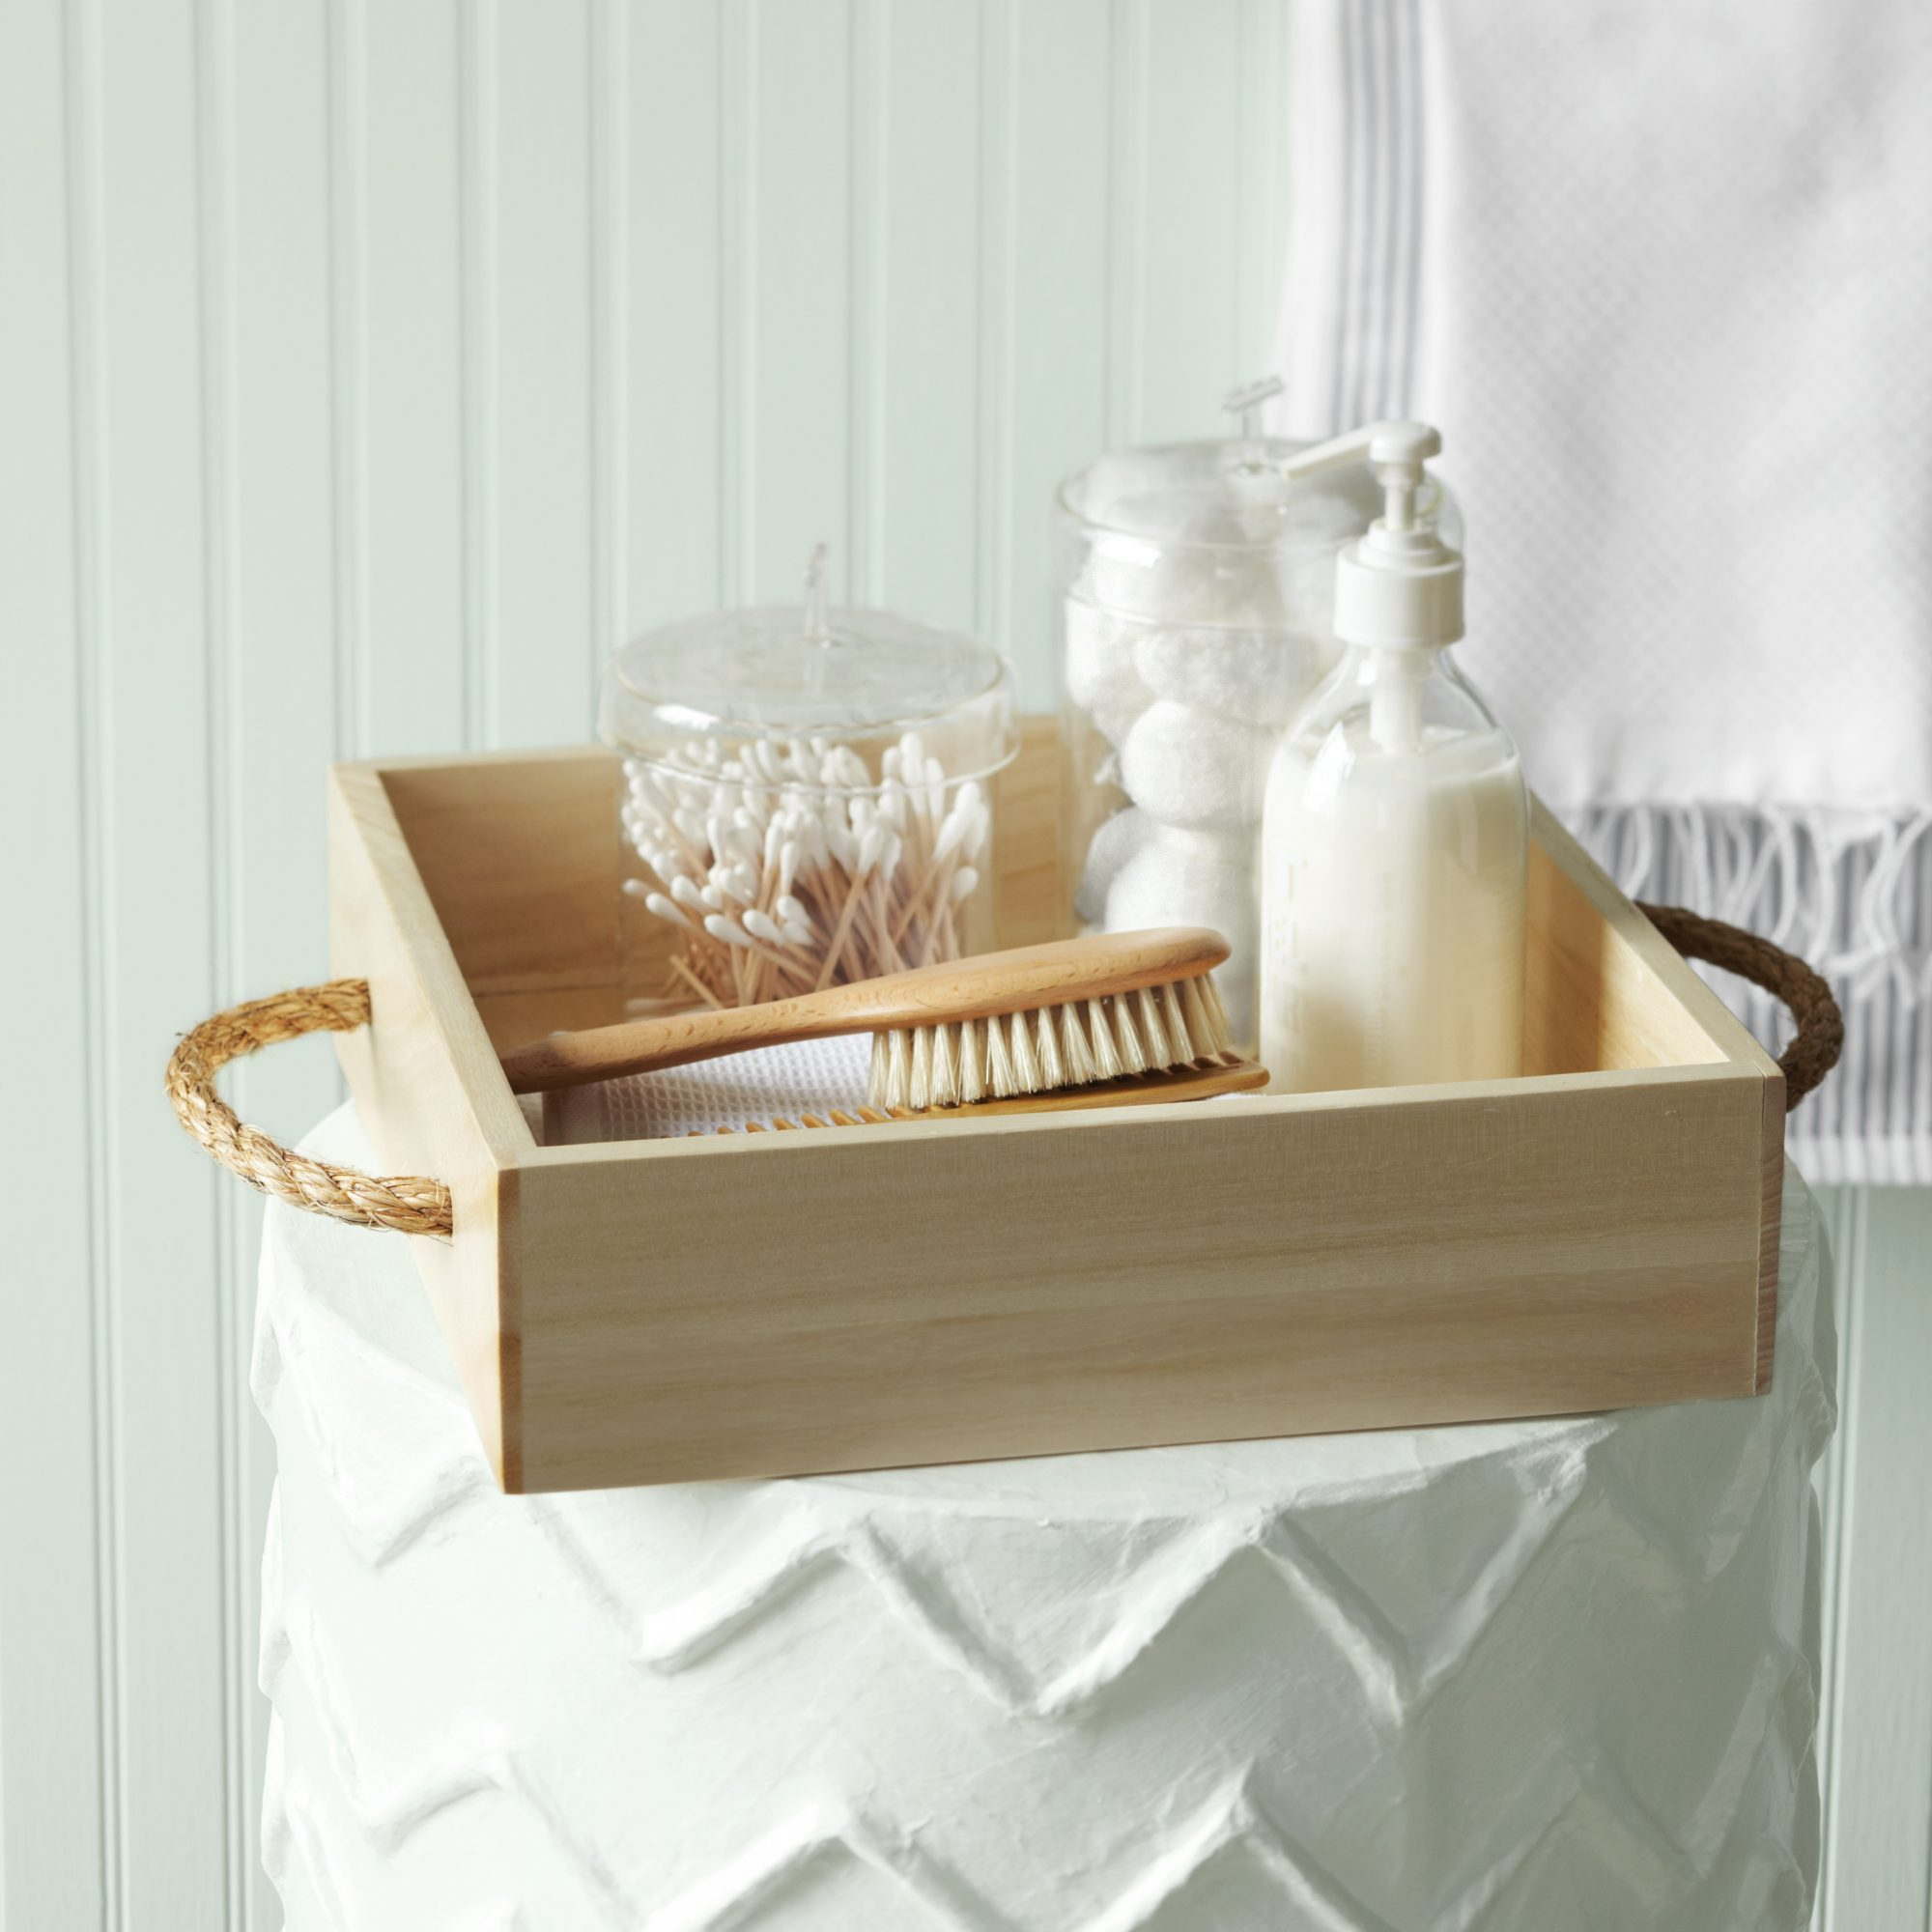 rope caddy with bathroom essentials